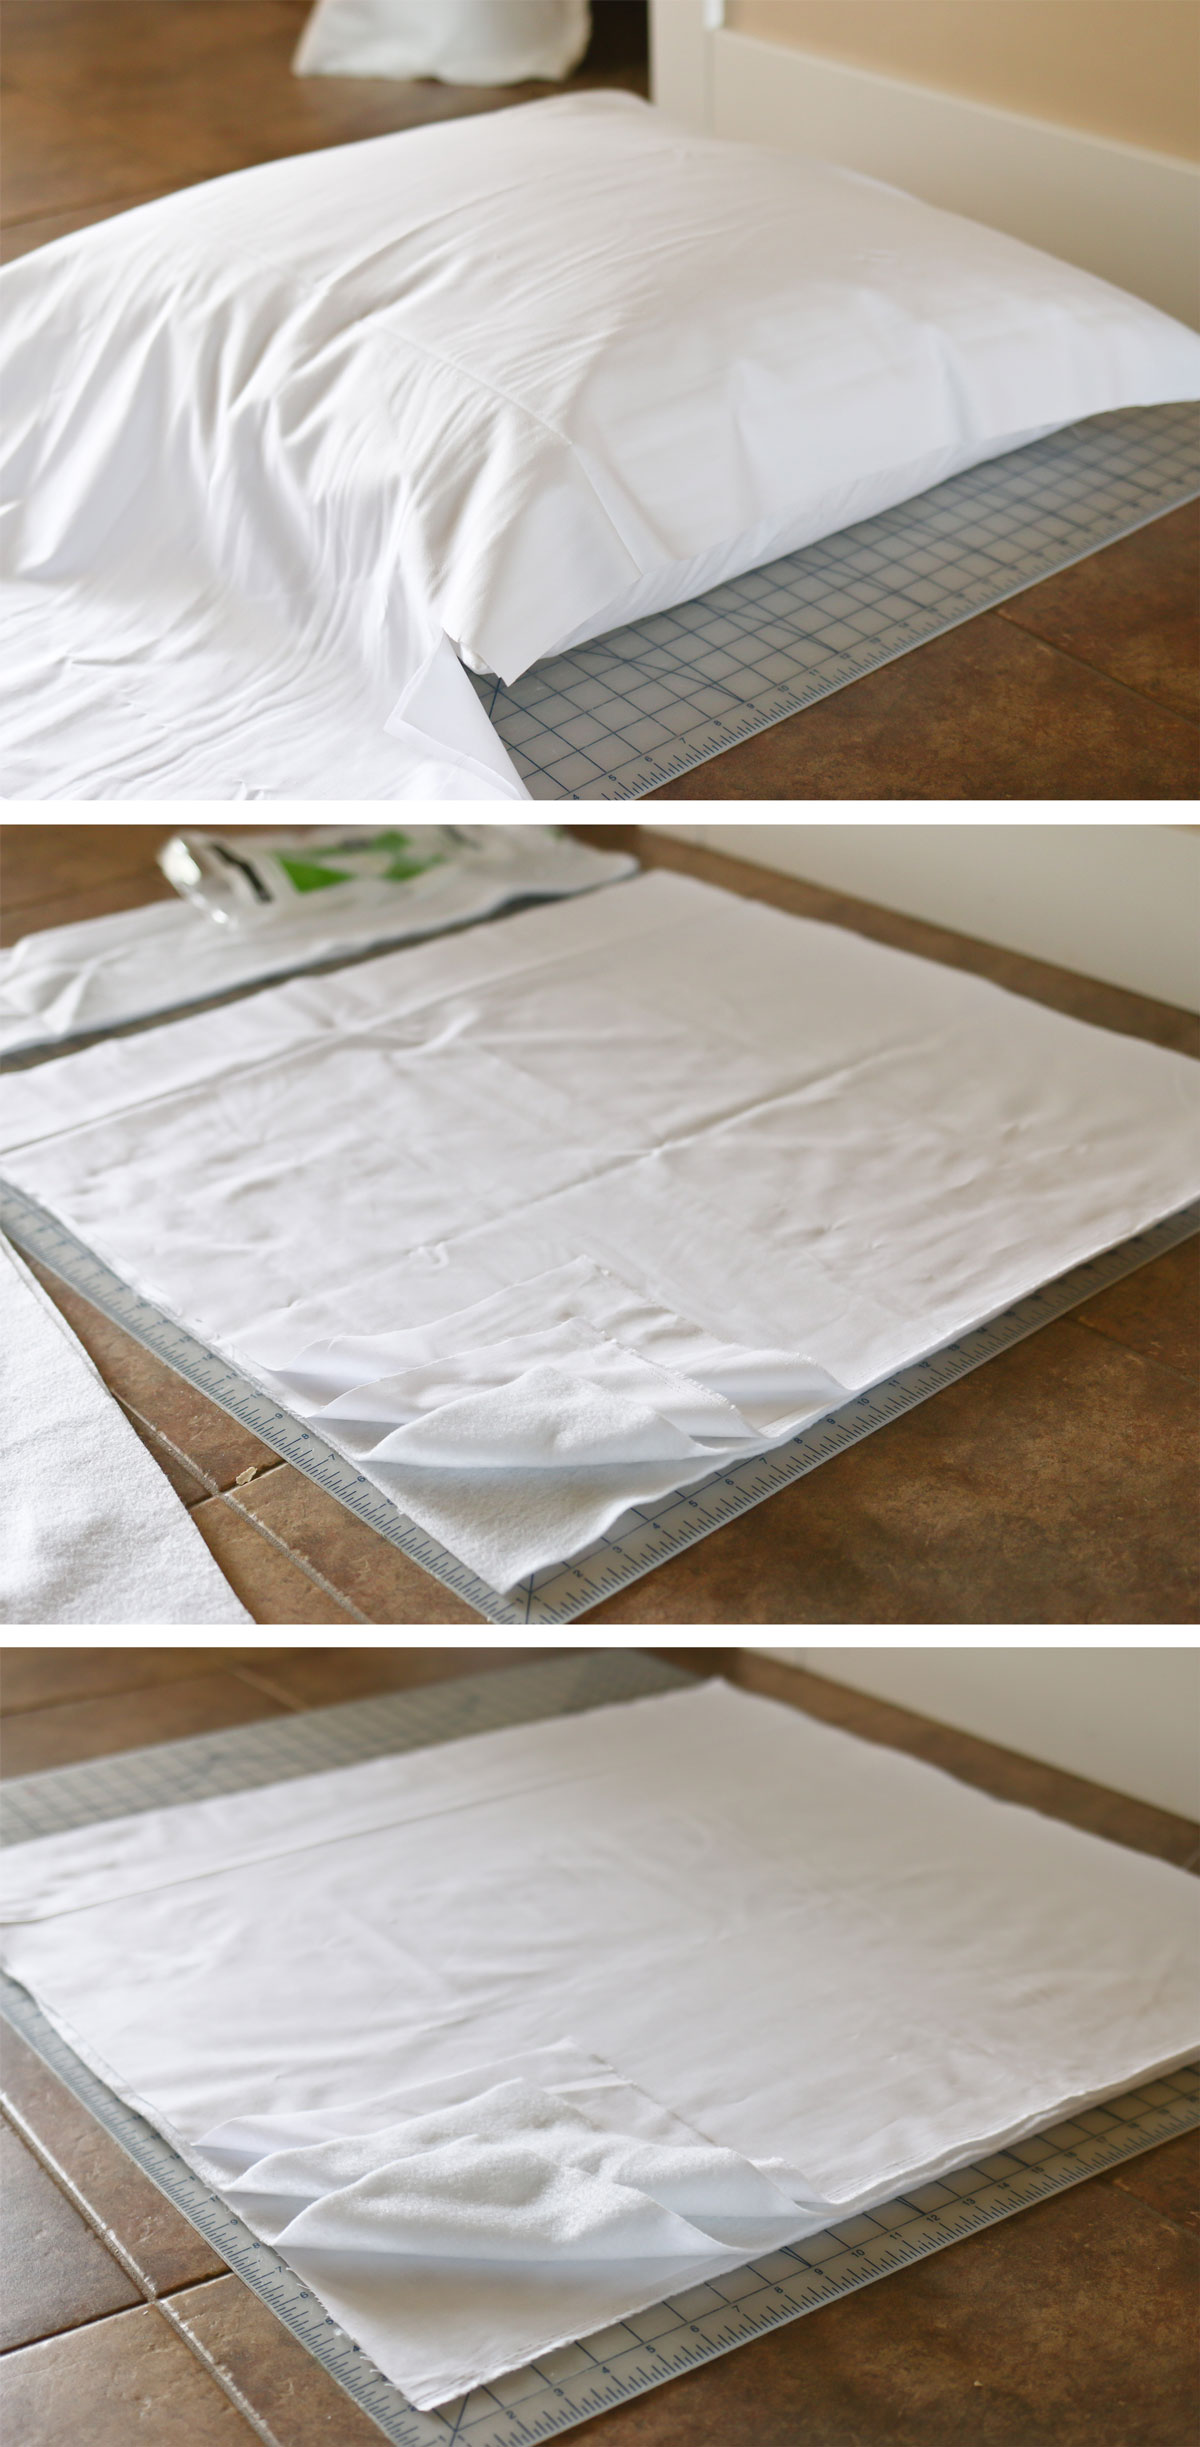 sewing steps for quilted pillow